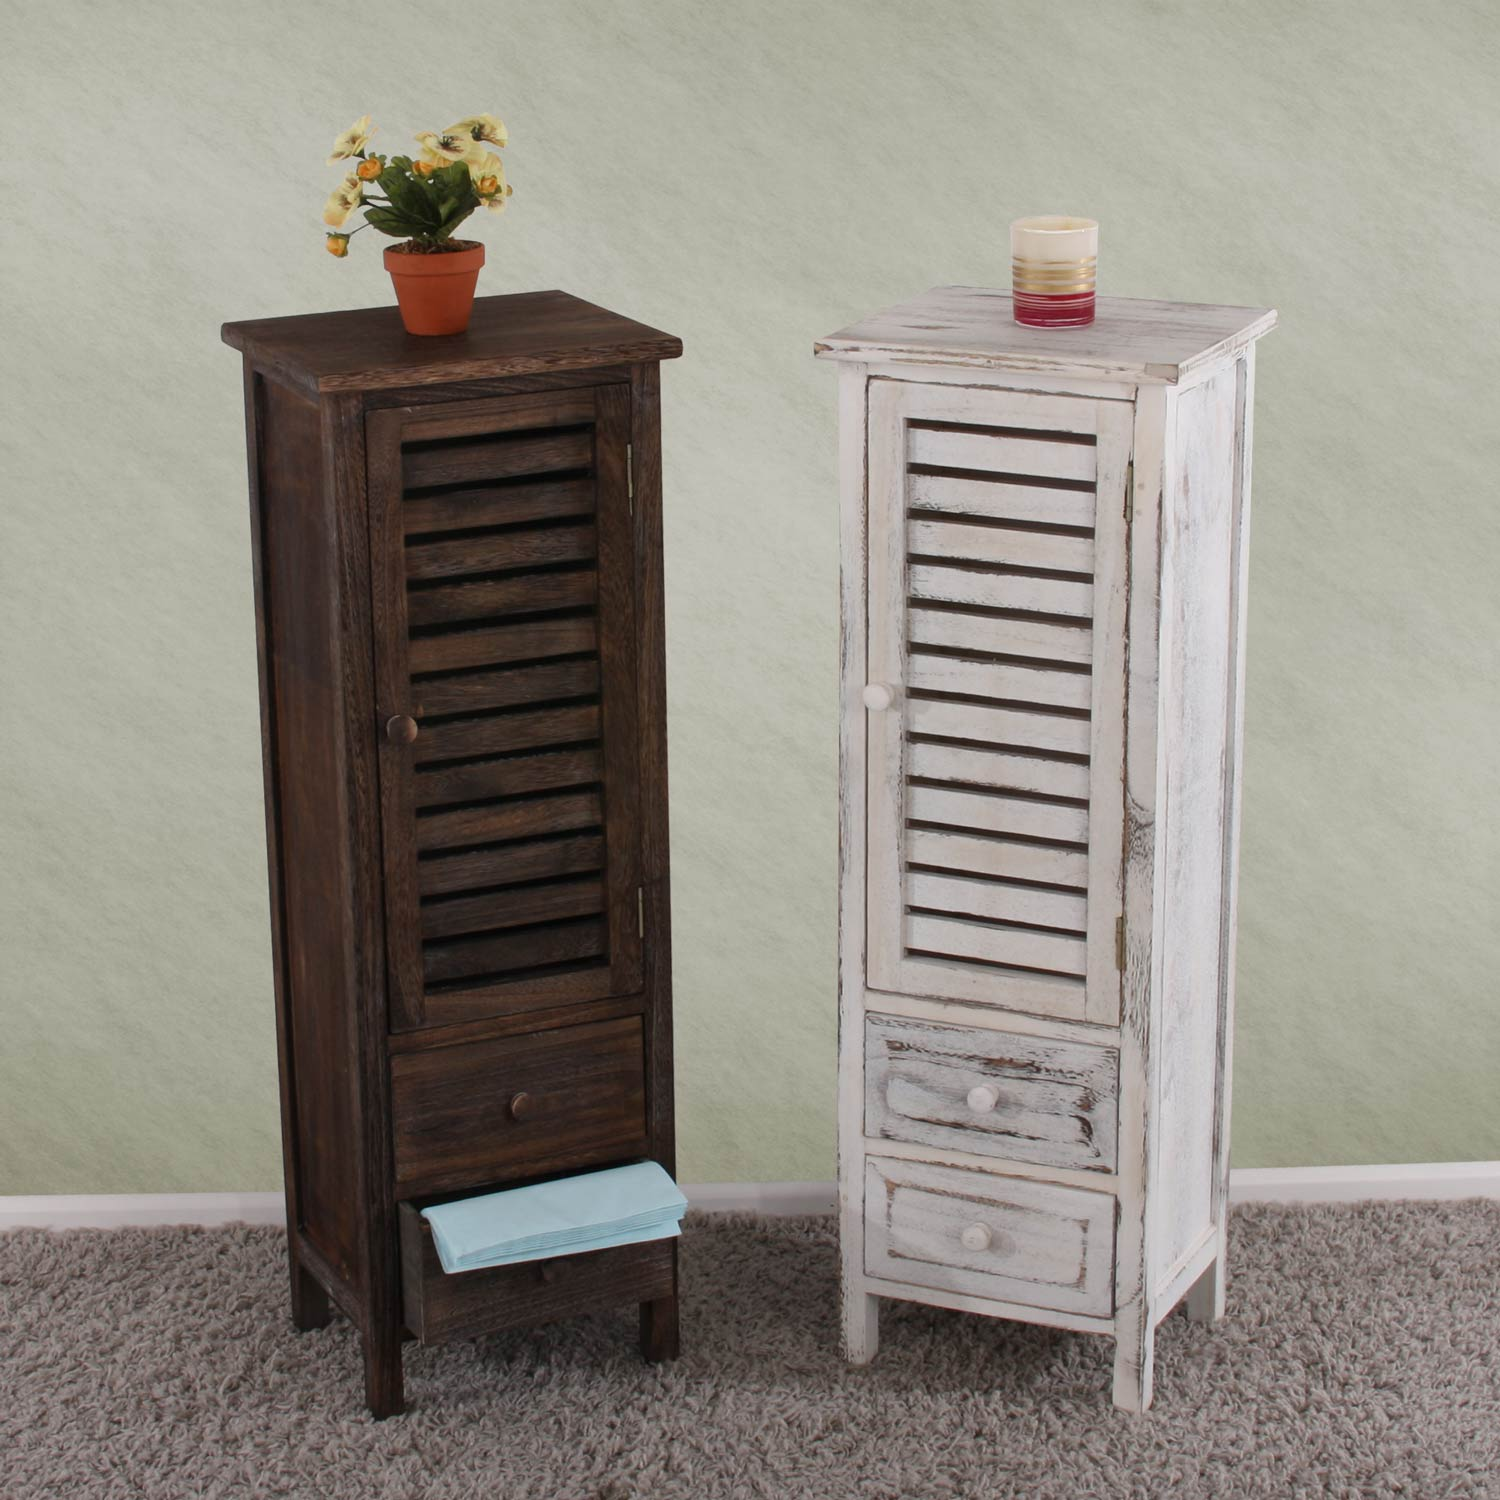 kommode schrank 90x30x25cm shabby look vintage braun. Black Bedroom Furniture Sets. Home Design Ideas